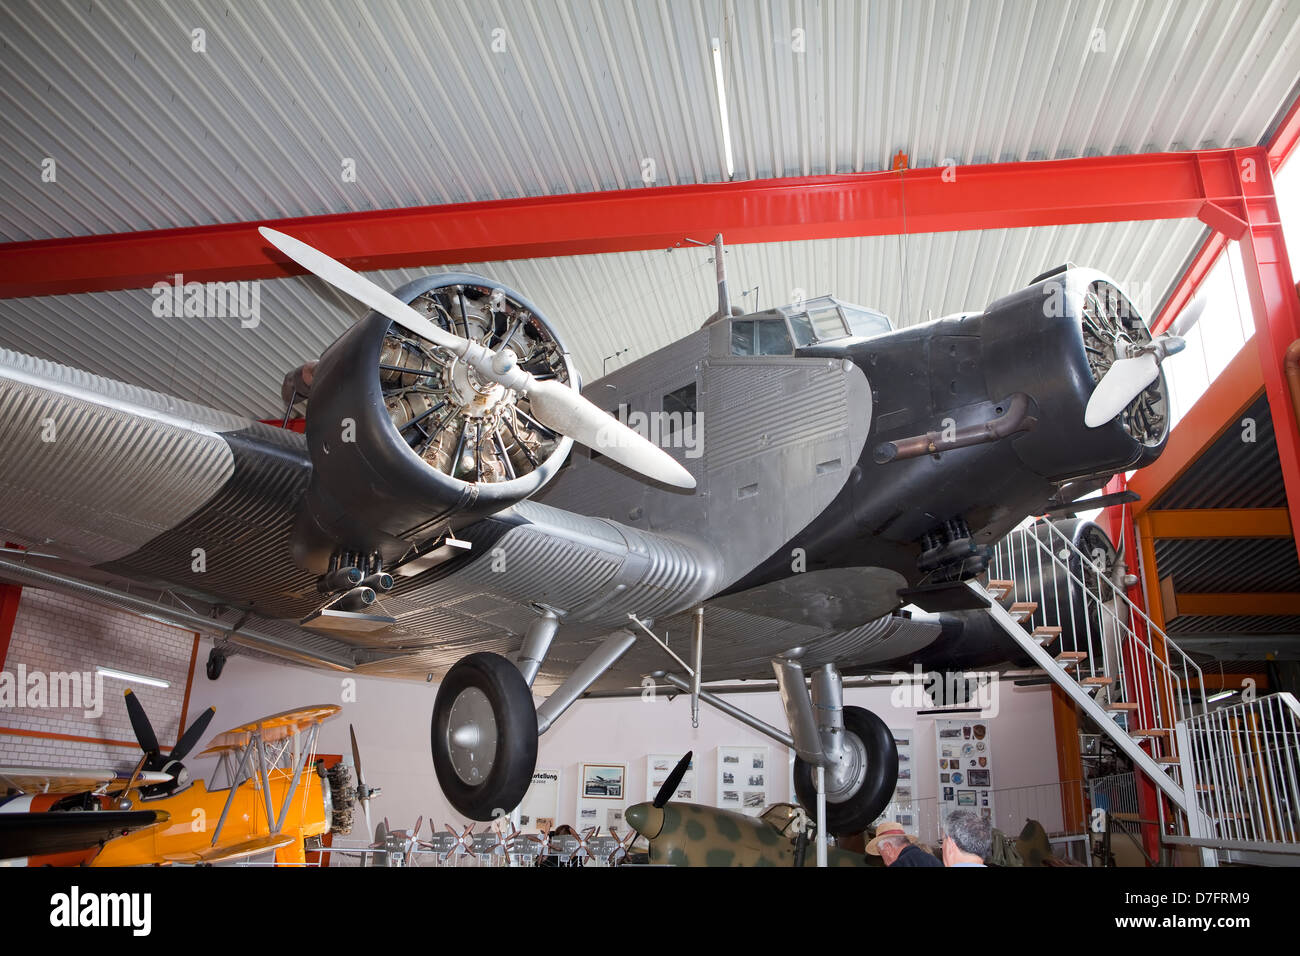 Detail of the passenger aircraft Junkers JU-52, Germany, Europe, - Stock Image